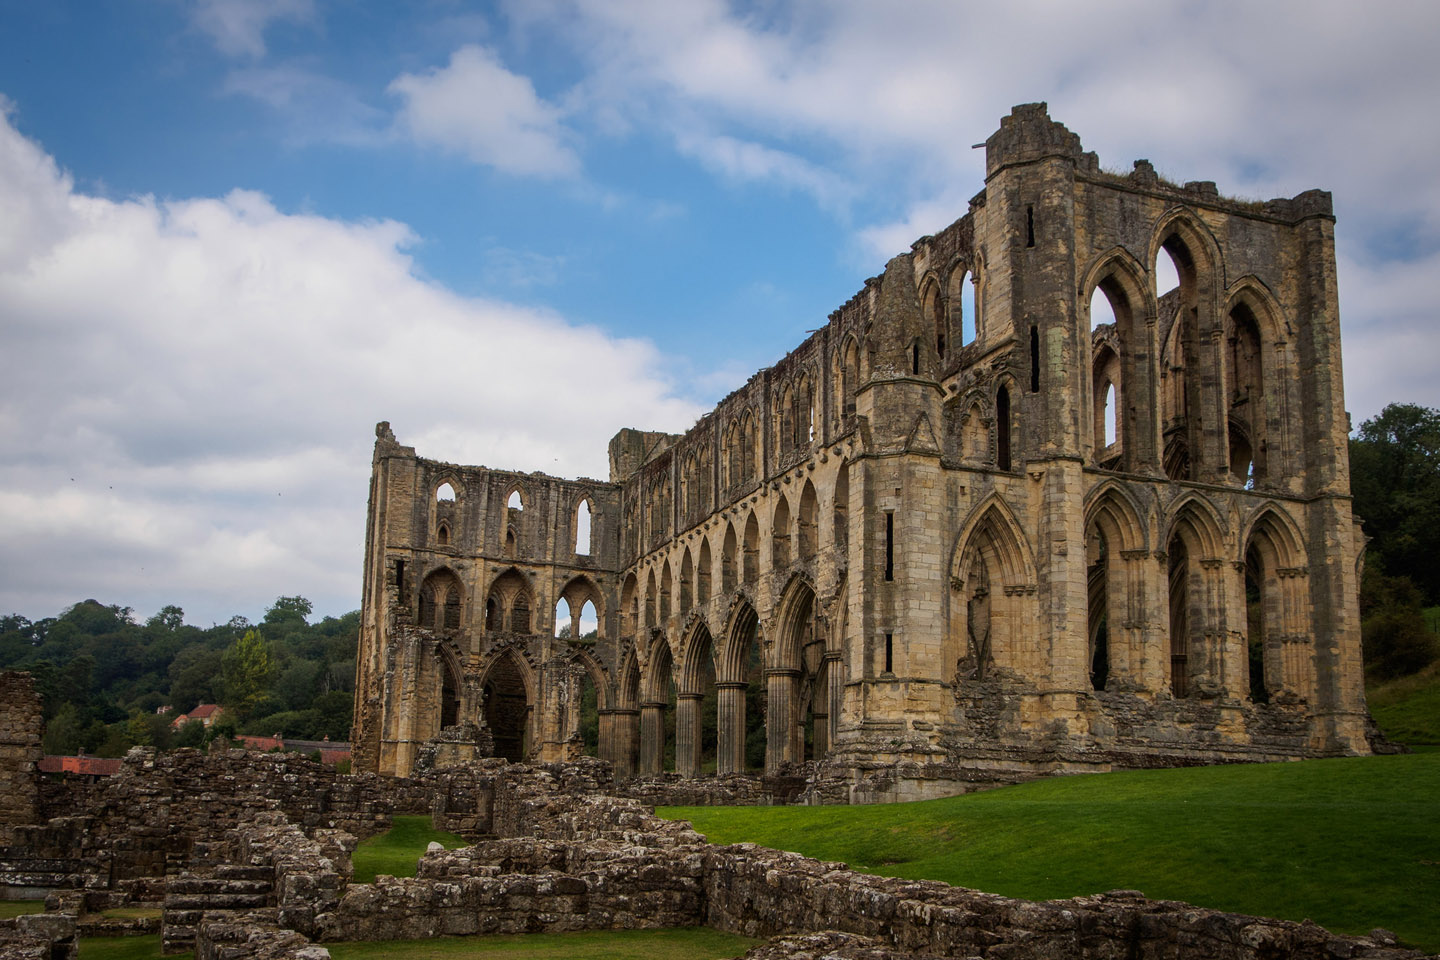 But why was Henry VIII so eager to get his hands on northern English monasteries? According to historian Stephanie Mann, basically for two classic, too well known simple reasons: money and power.